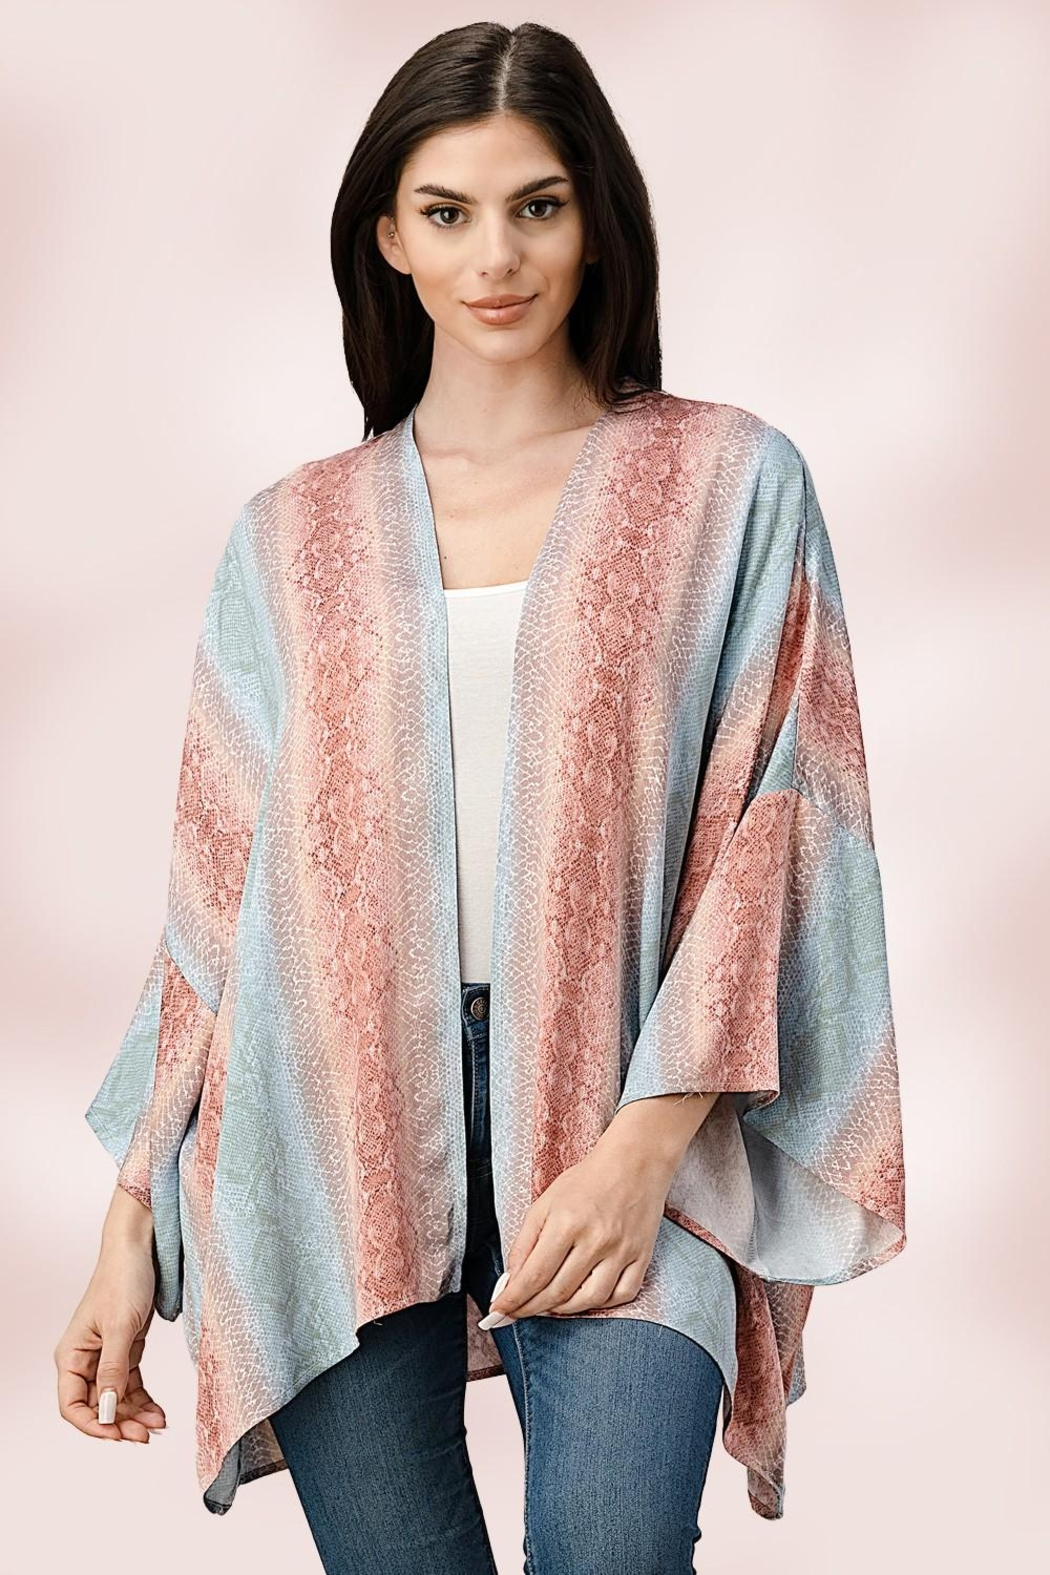 Miley and Molly Oversized Kimono In Snake Skin Printed Cardigan - Main Image